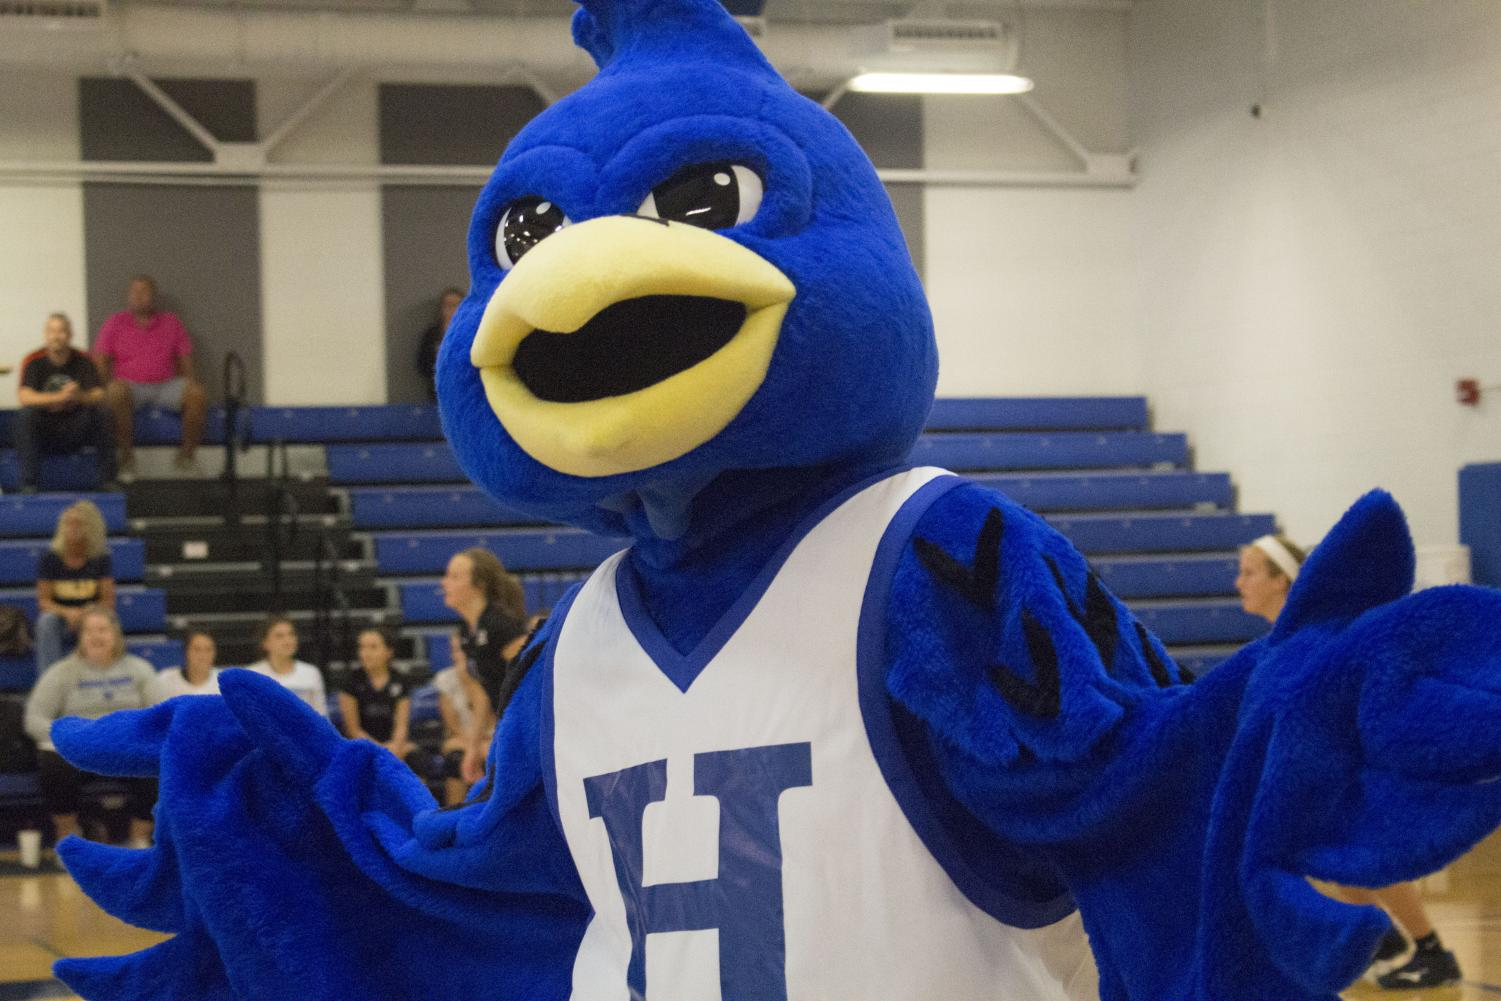 The Highlands Bluebird Mascot makes an appearance during the Freshmen match to pump up the crowd.